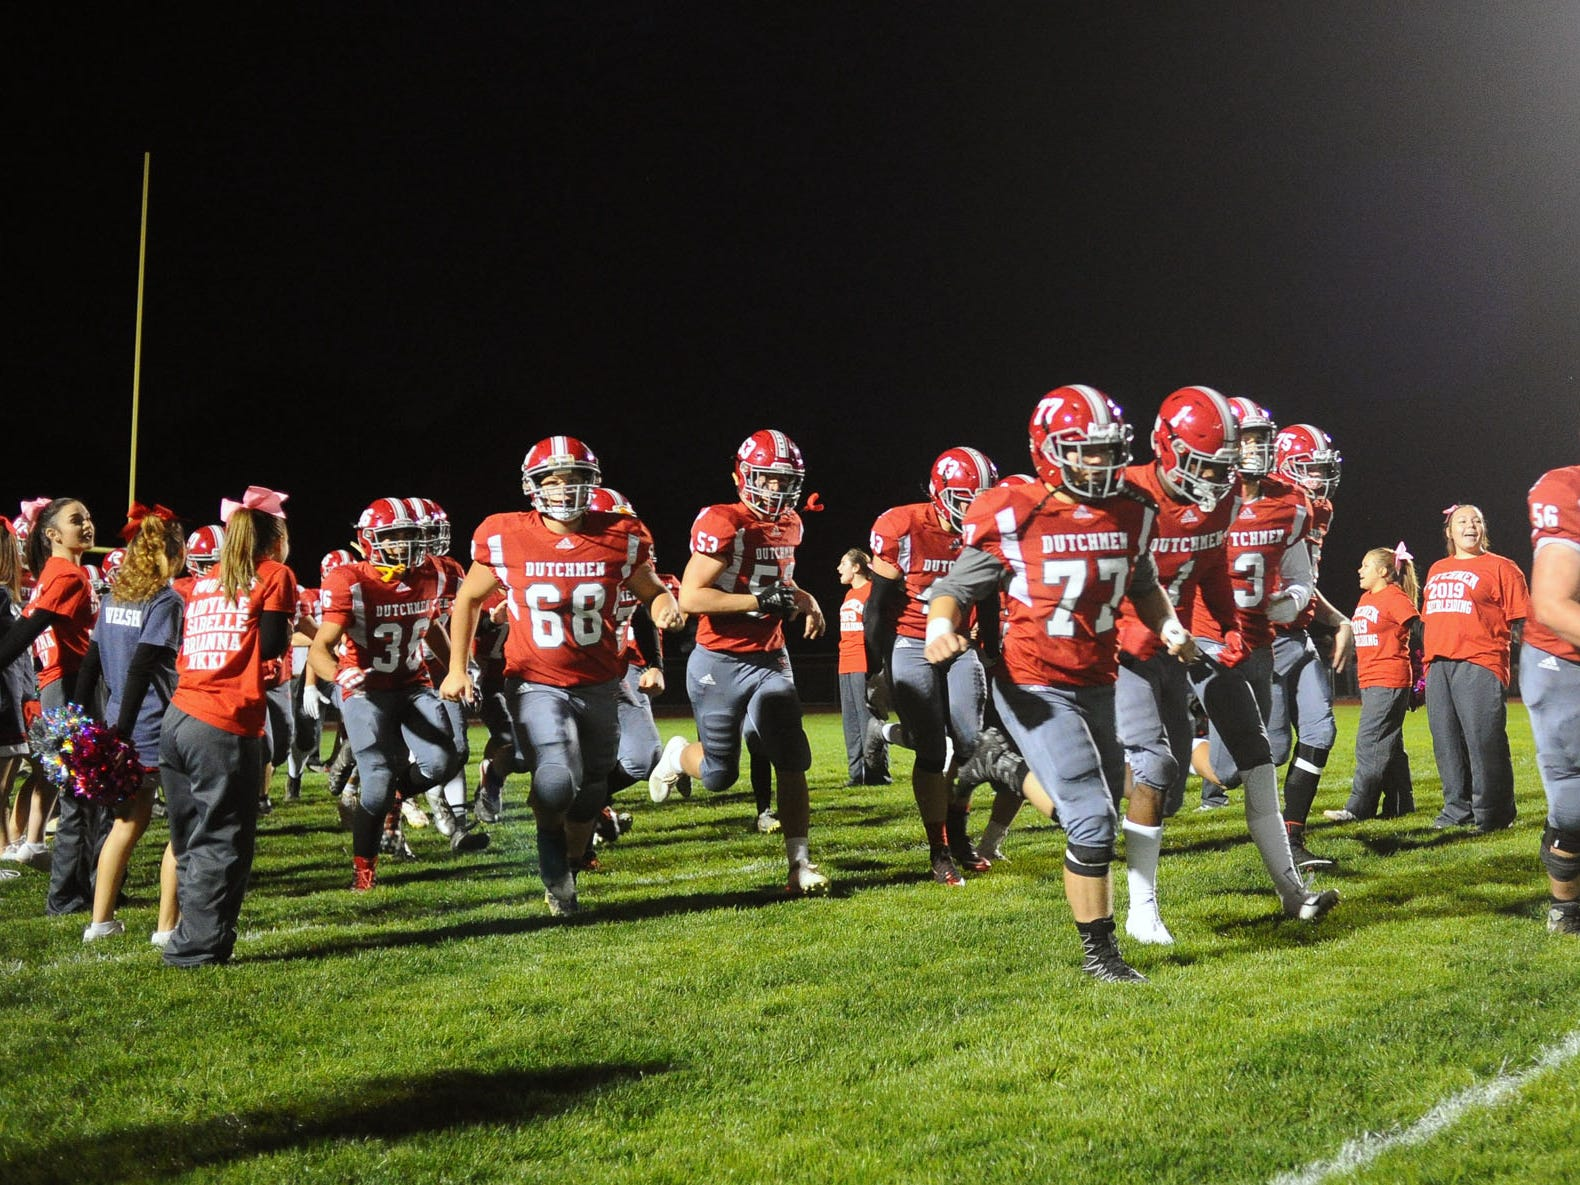 The A-C Dutchmen run onto the field before the start of the game  played Friday Oct.19,2018 at Annville Cleona H.S.